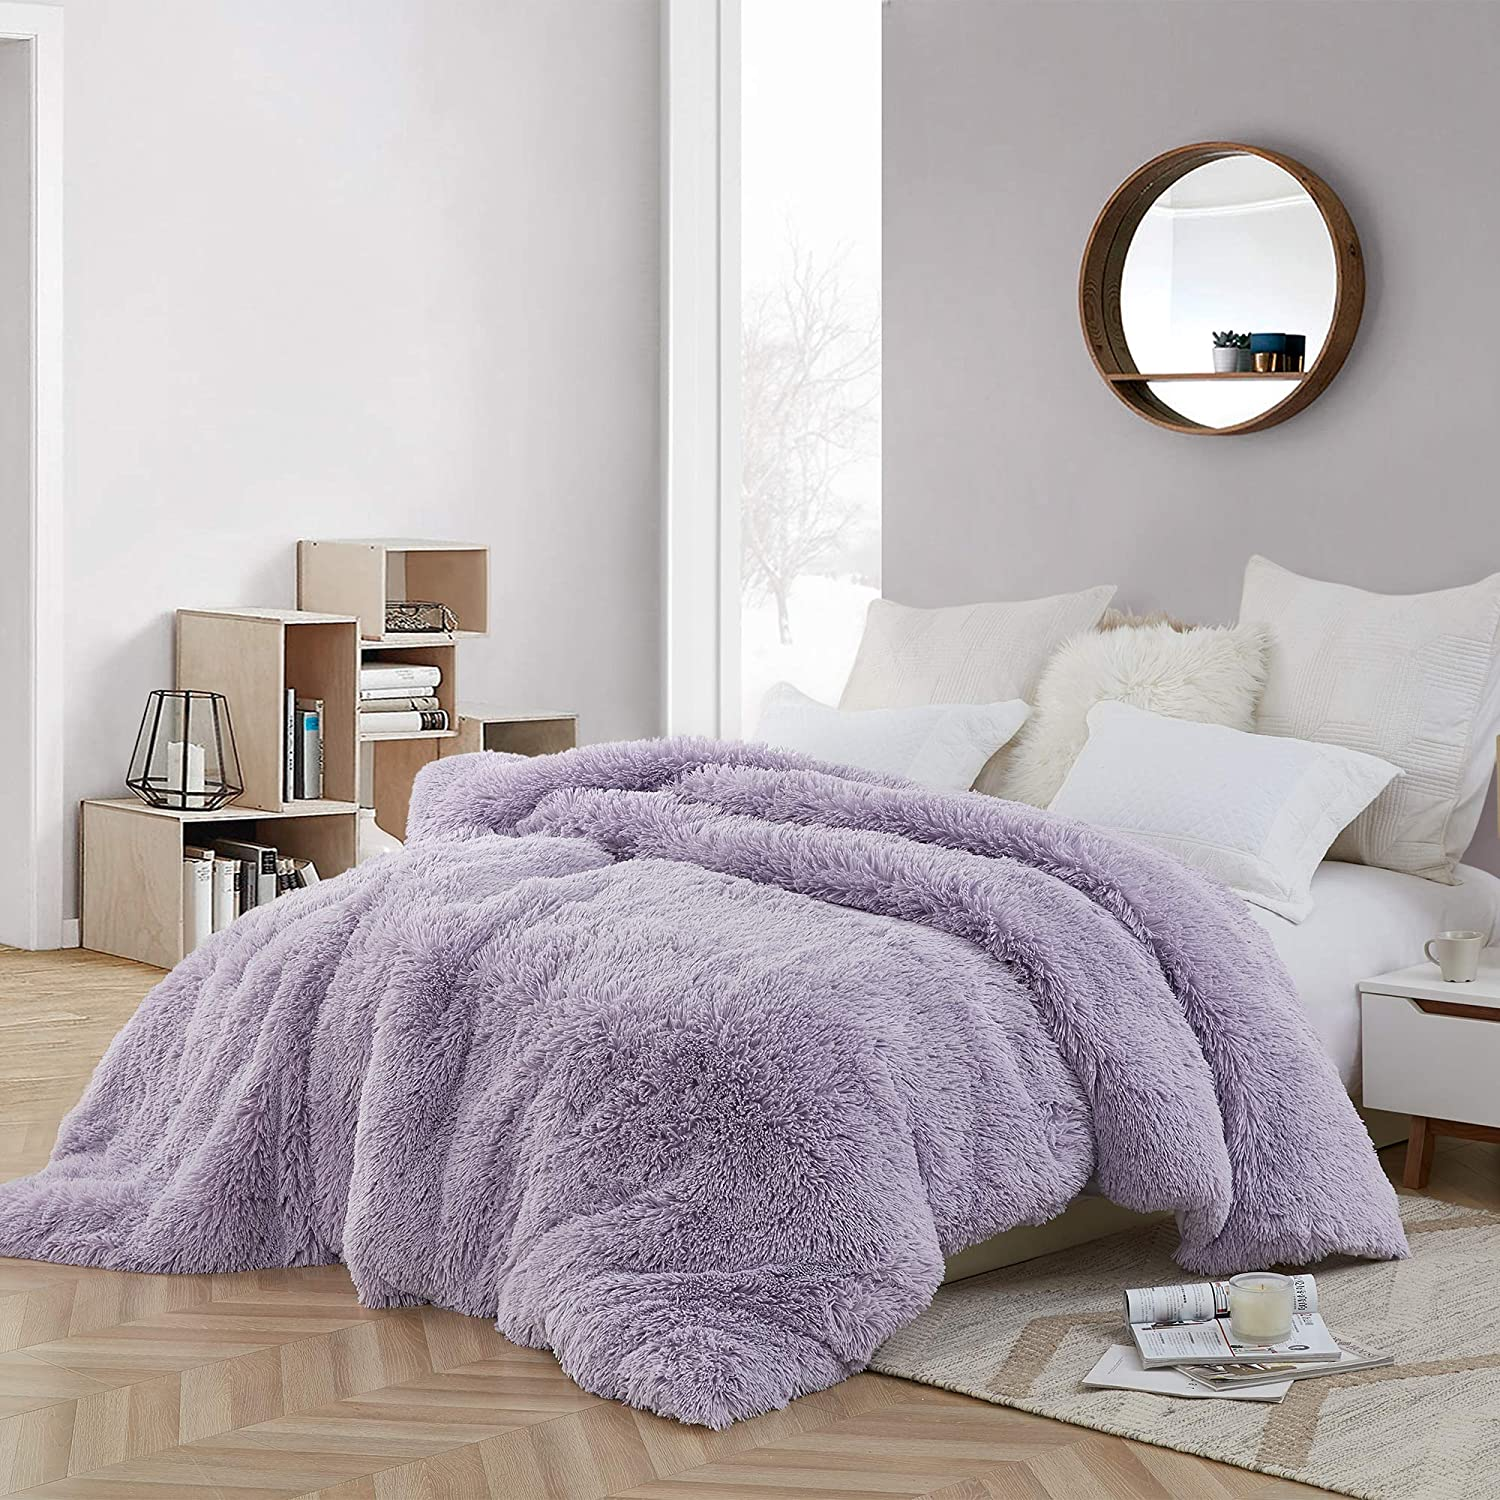 Glacier Gray//White are You Kidding? Byourbed Coma Inducer Twin XL Duvet Cover